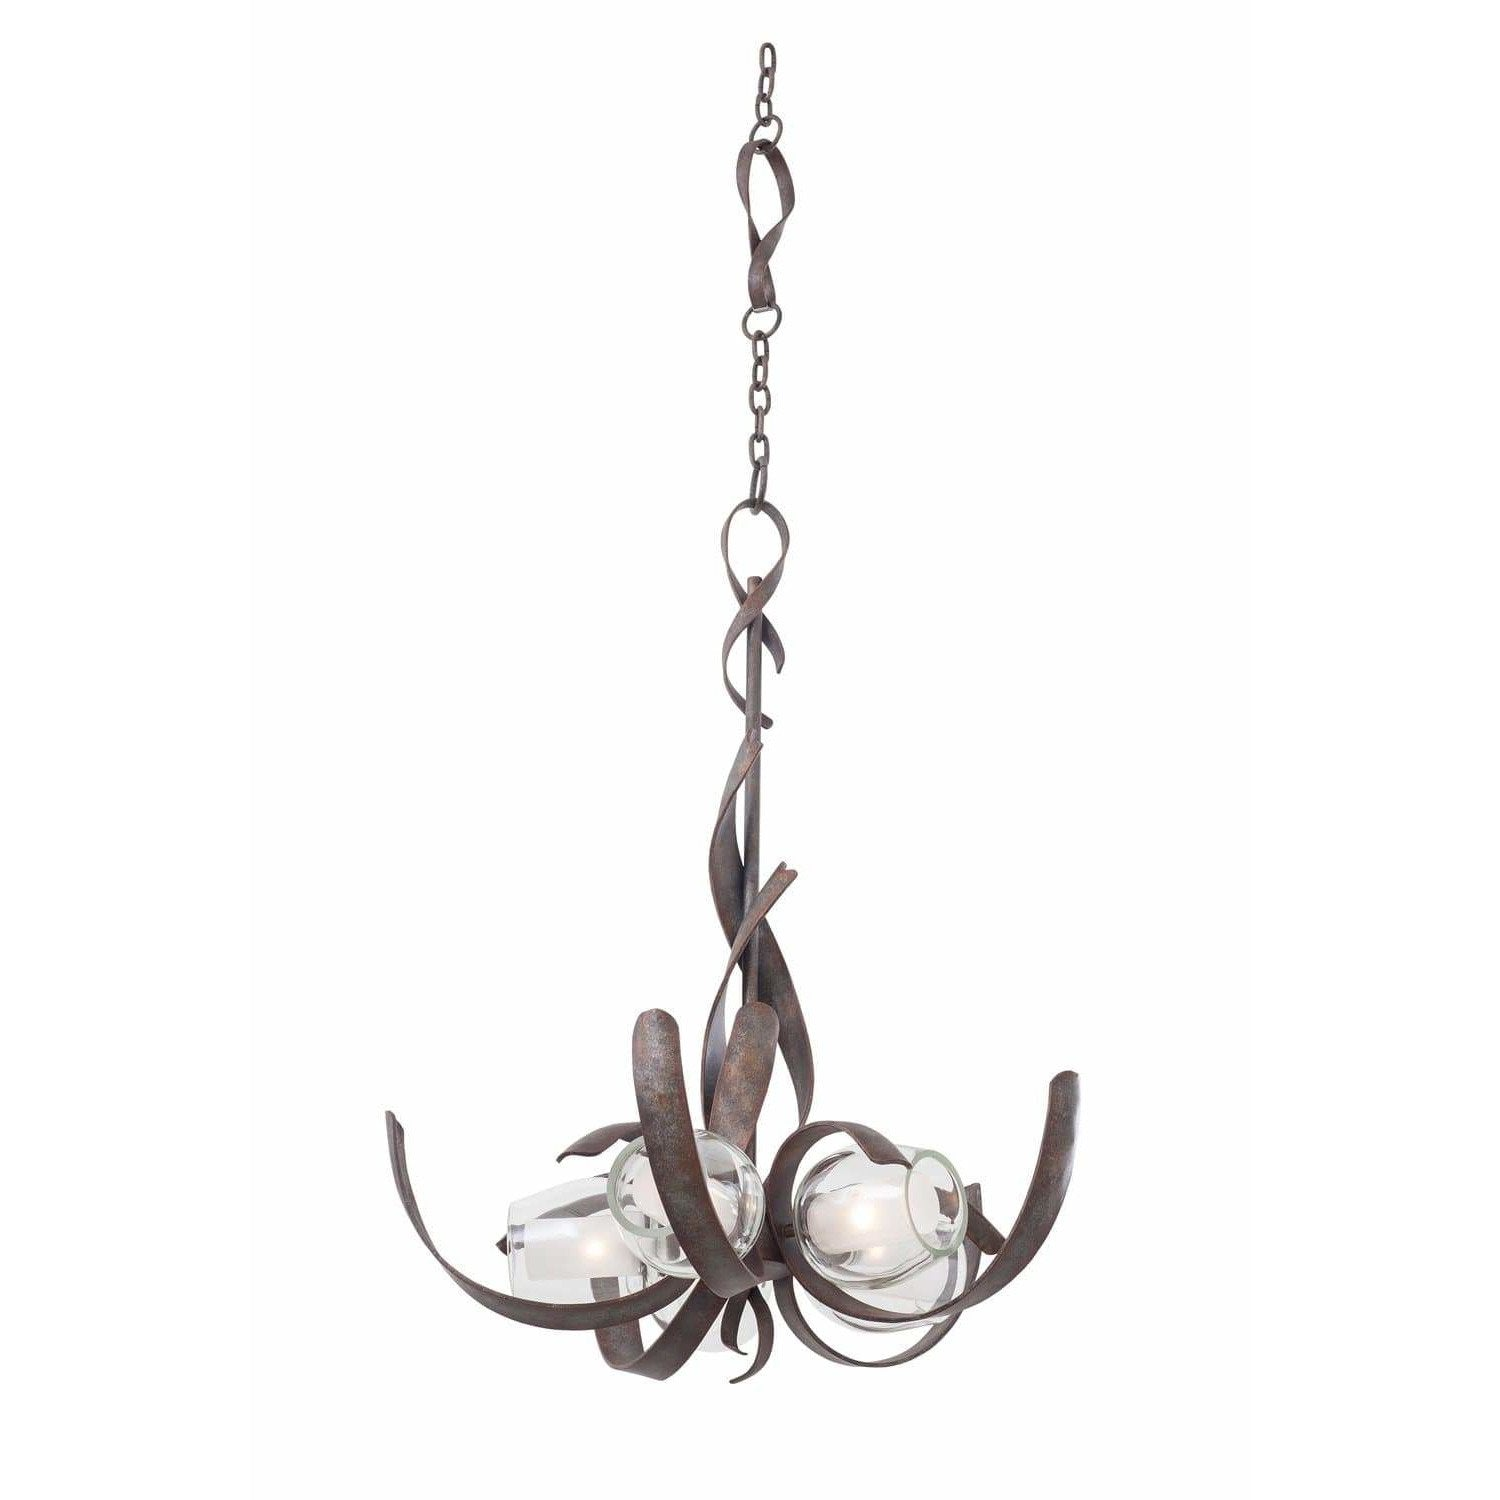 Kalco Lighting Chandeliers Oxidized Copper Solana 5 Light Chandelier By Kalco Lighting 7550